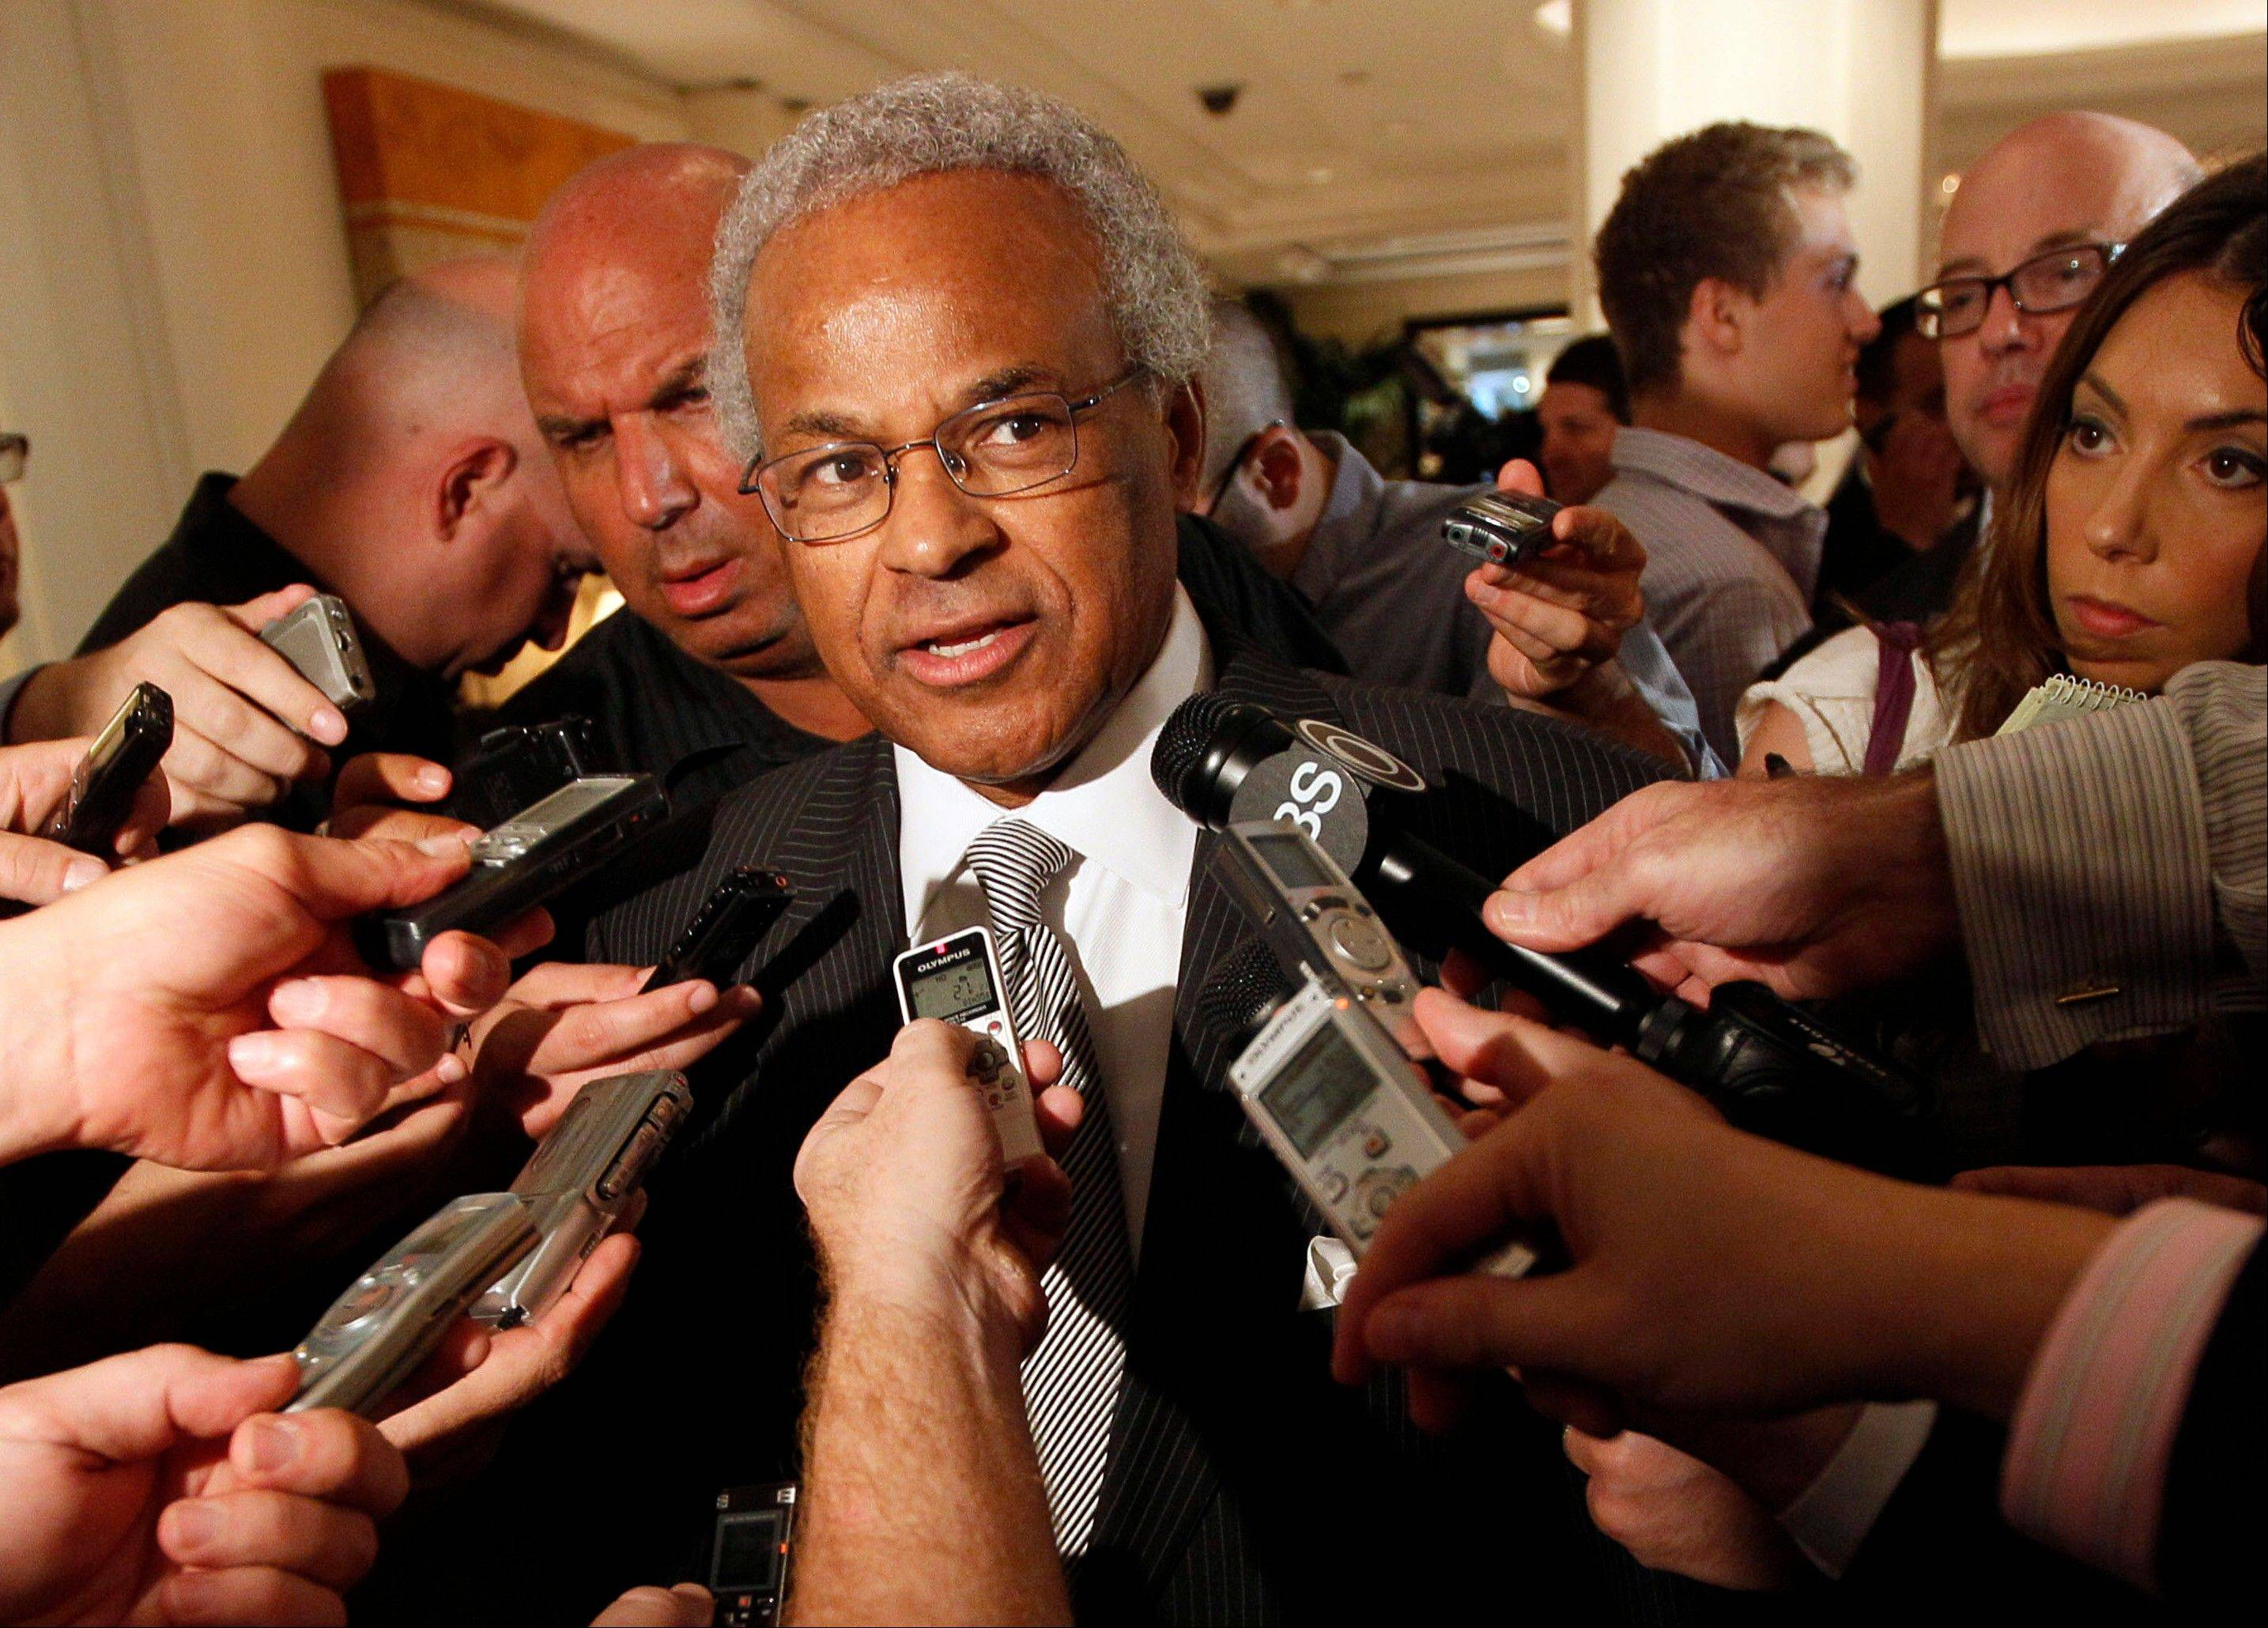 FILE - In this June 30, 2011, file photo,�NBA Players Union chief Billy Hunter speaks to reporters after a meeting with the NBA in New York. Hunter has been unanimously voted out as executive director of the NBA players' association, Saturday, Feb. 16, 2013.